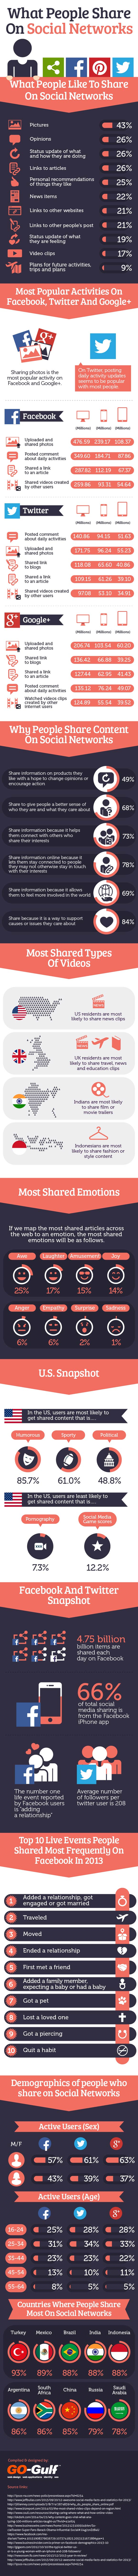 Infographie 201 - what-people-share-social-networks